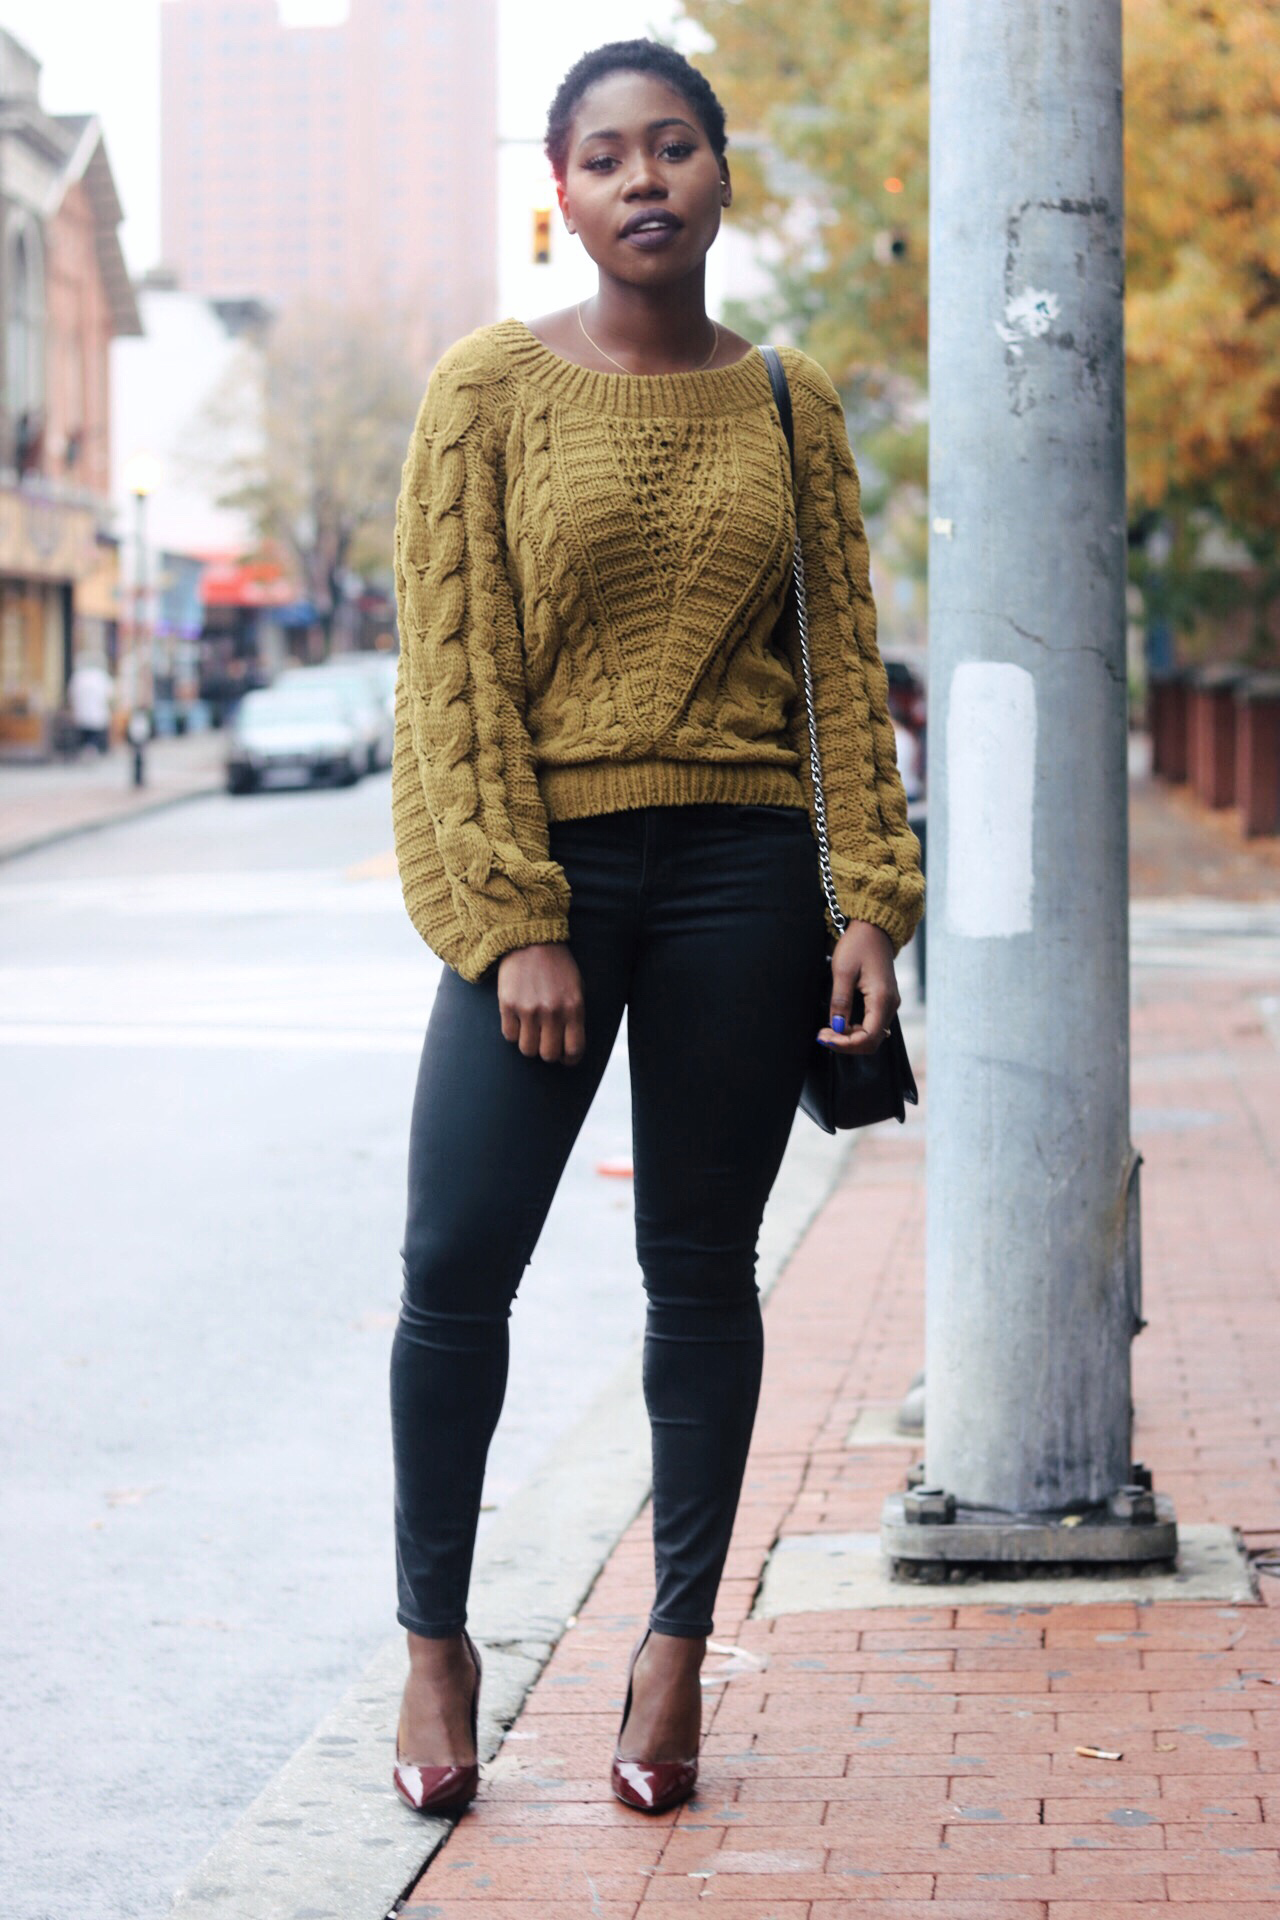 ALT= black leather jeans & yellow chunky sweater